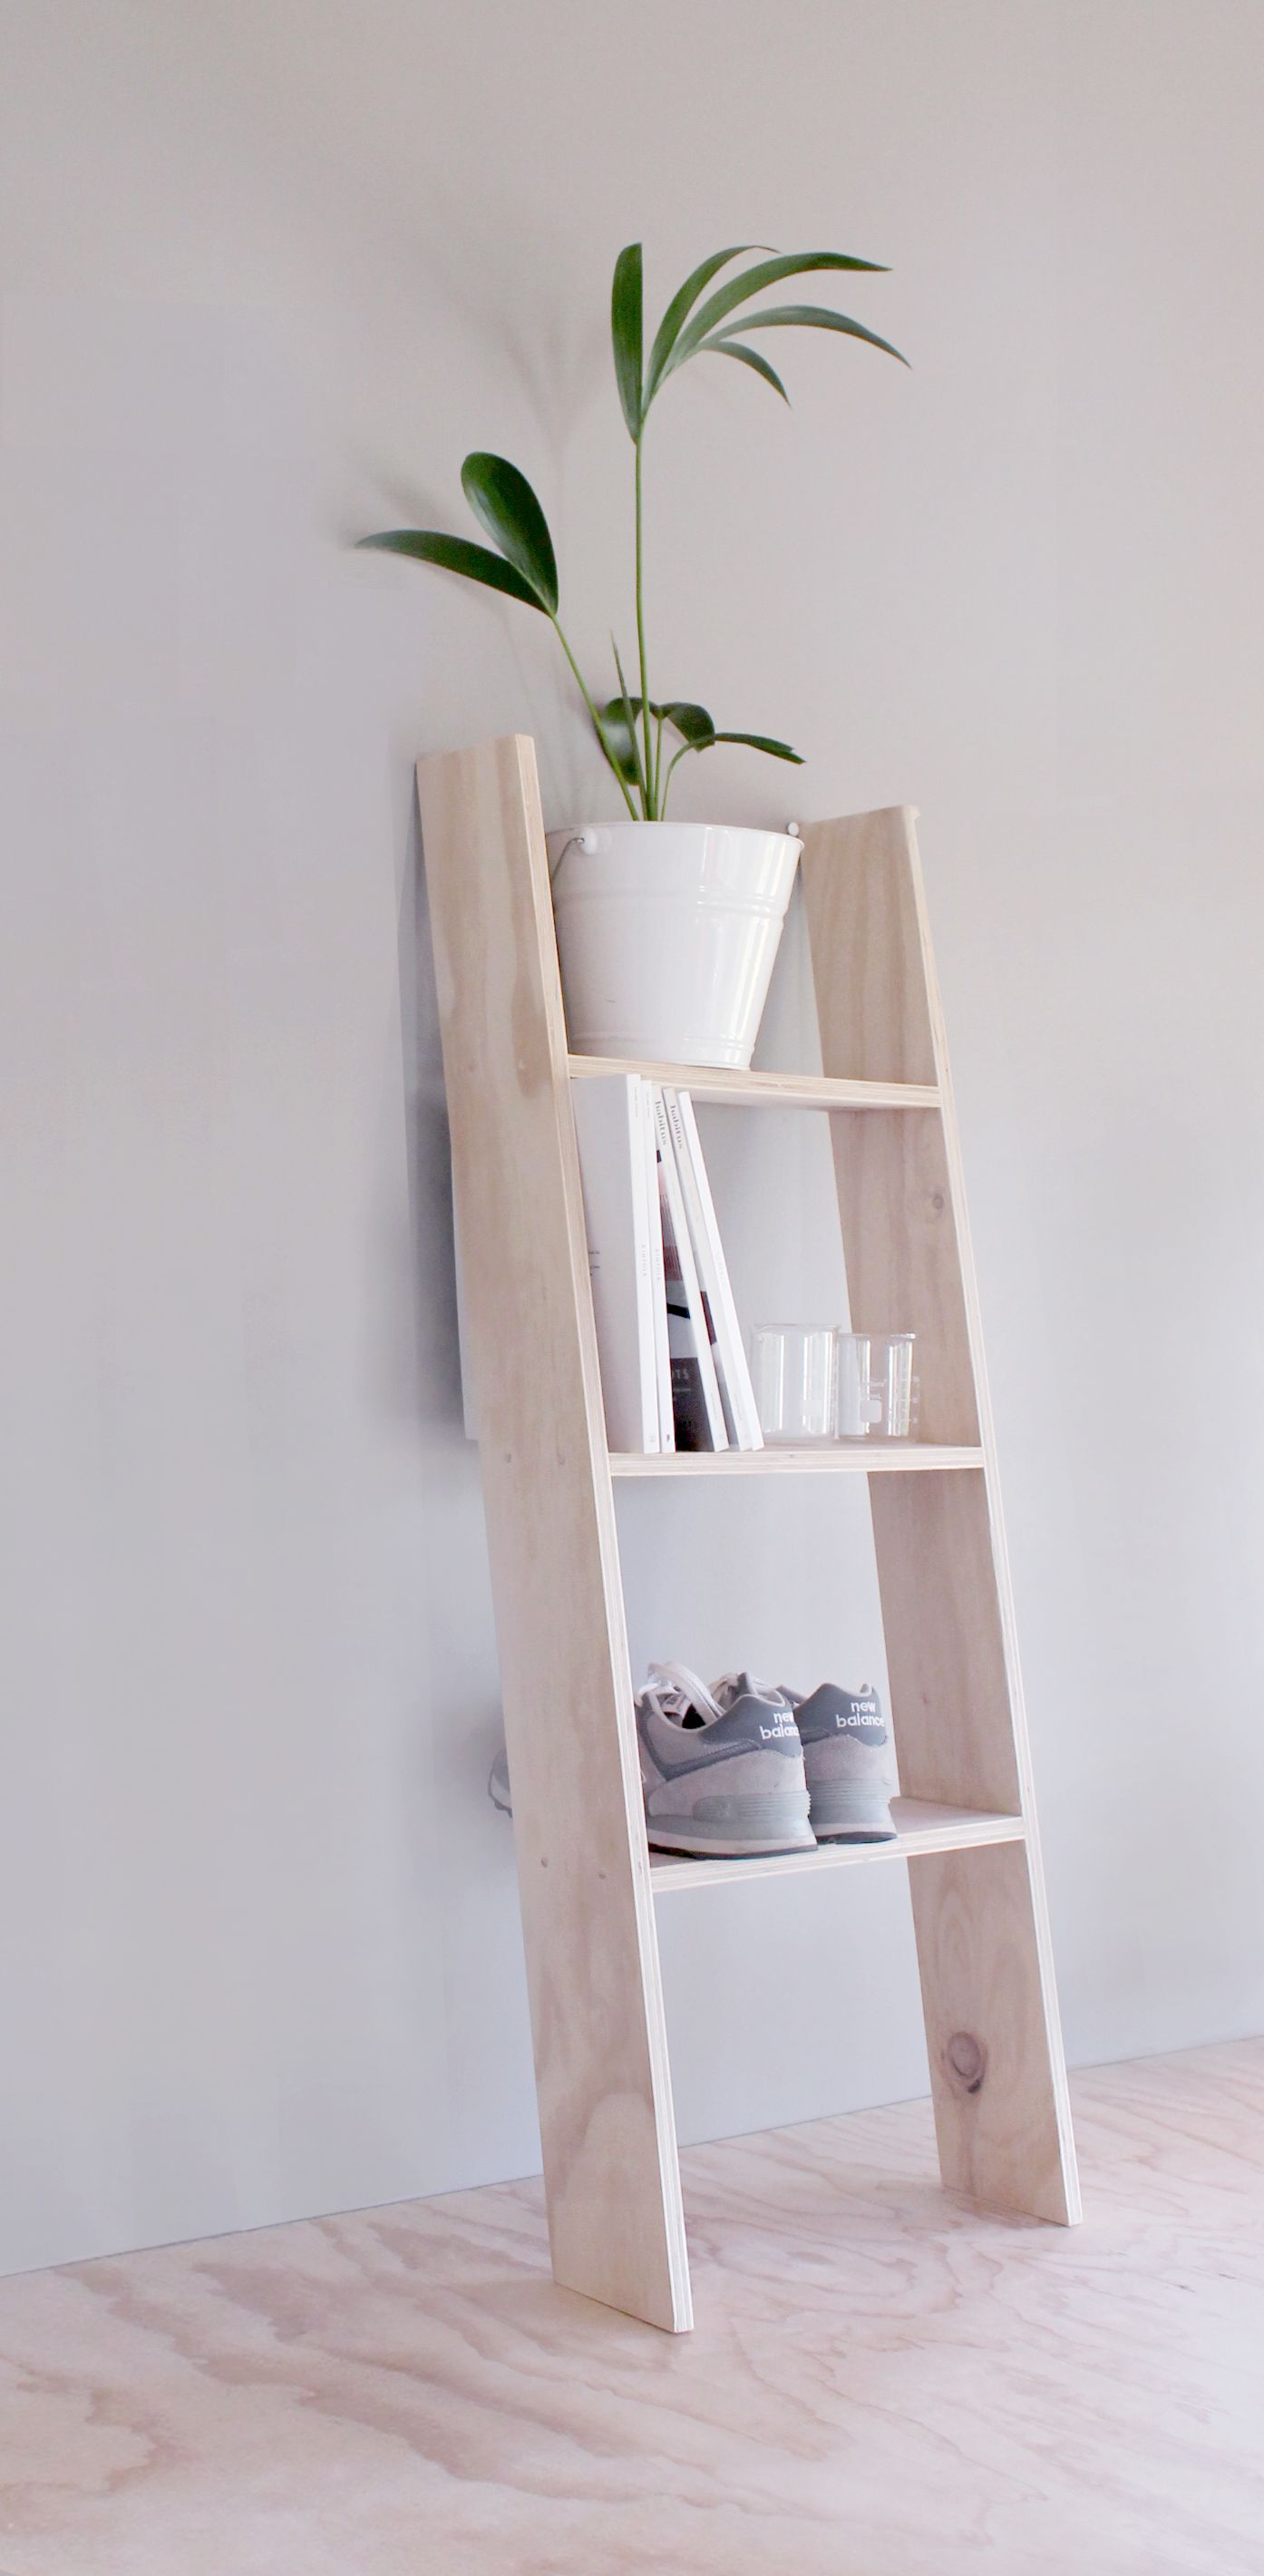 pdf bookcase bookcases diy images view bookshelf larger astounding creativity ladder l leaning slanted ikea